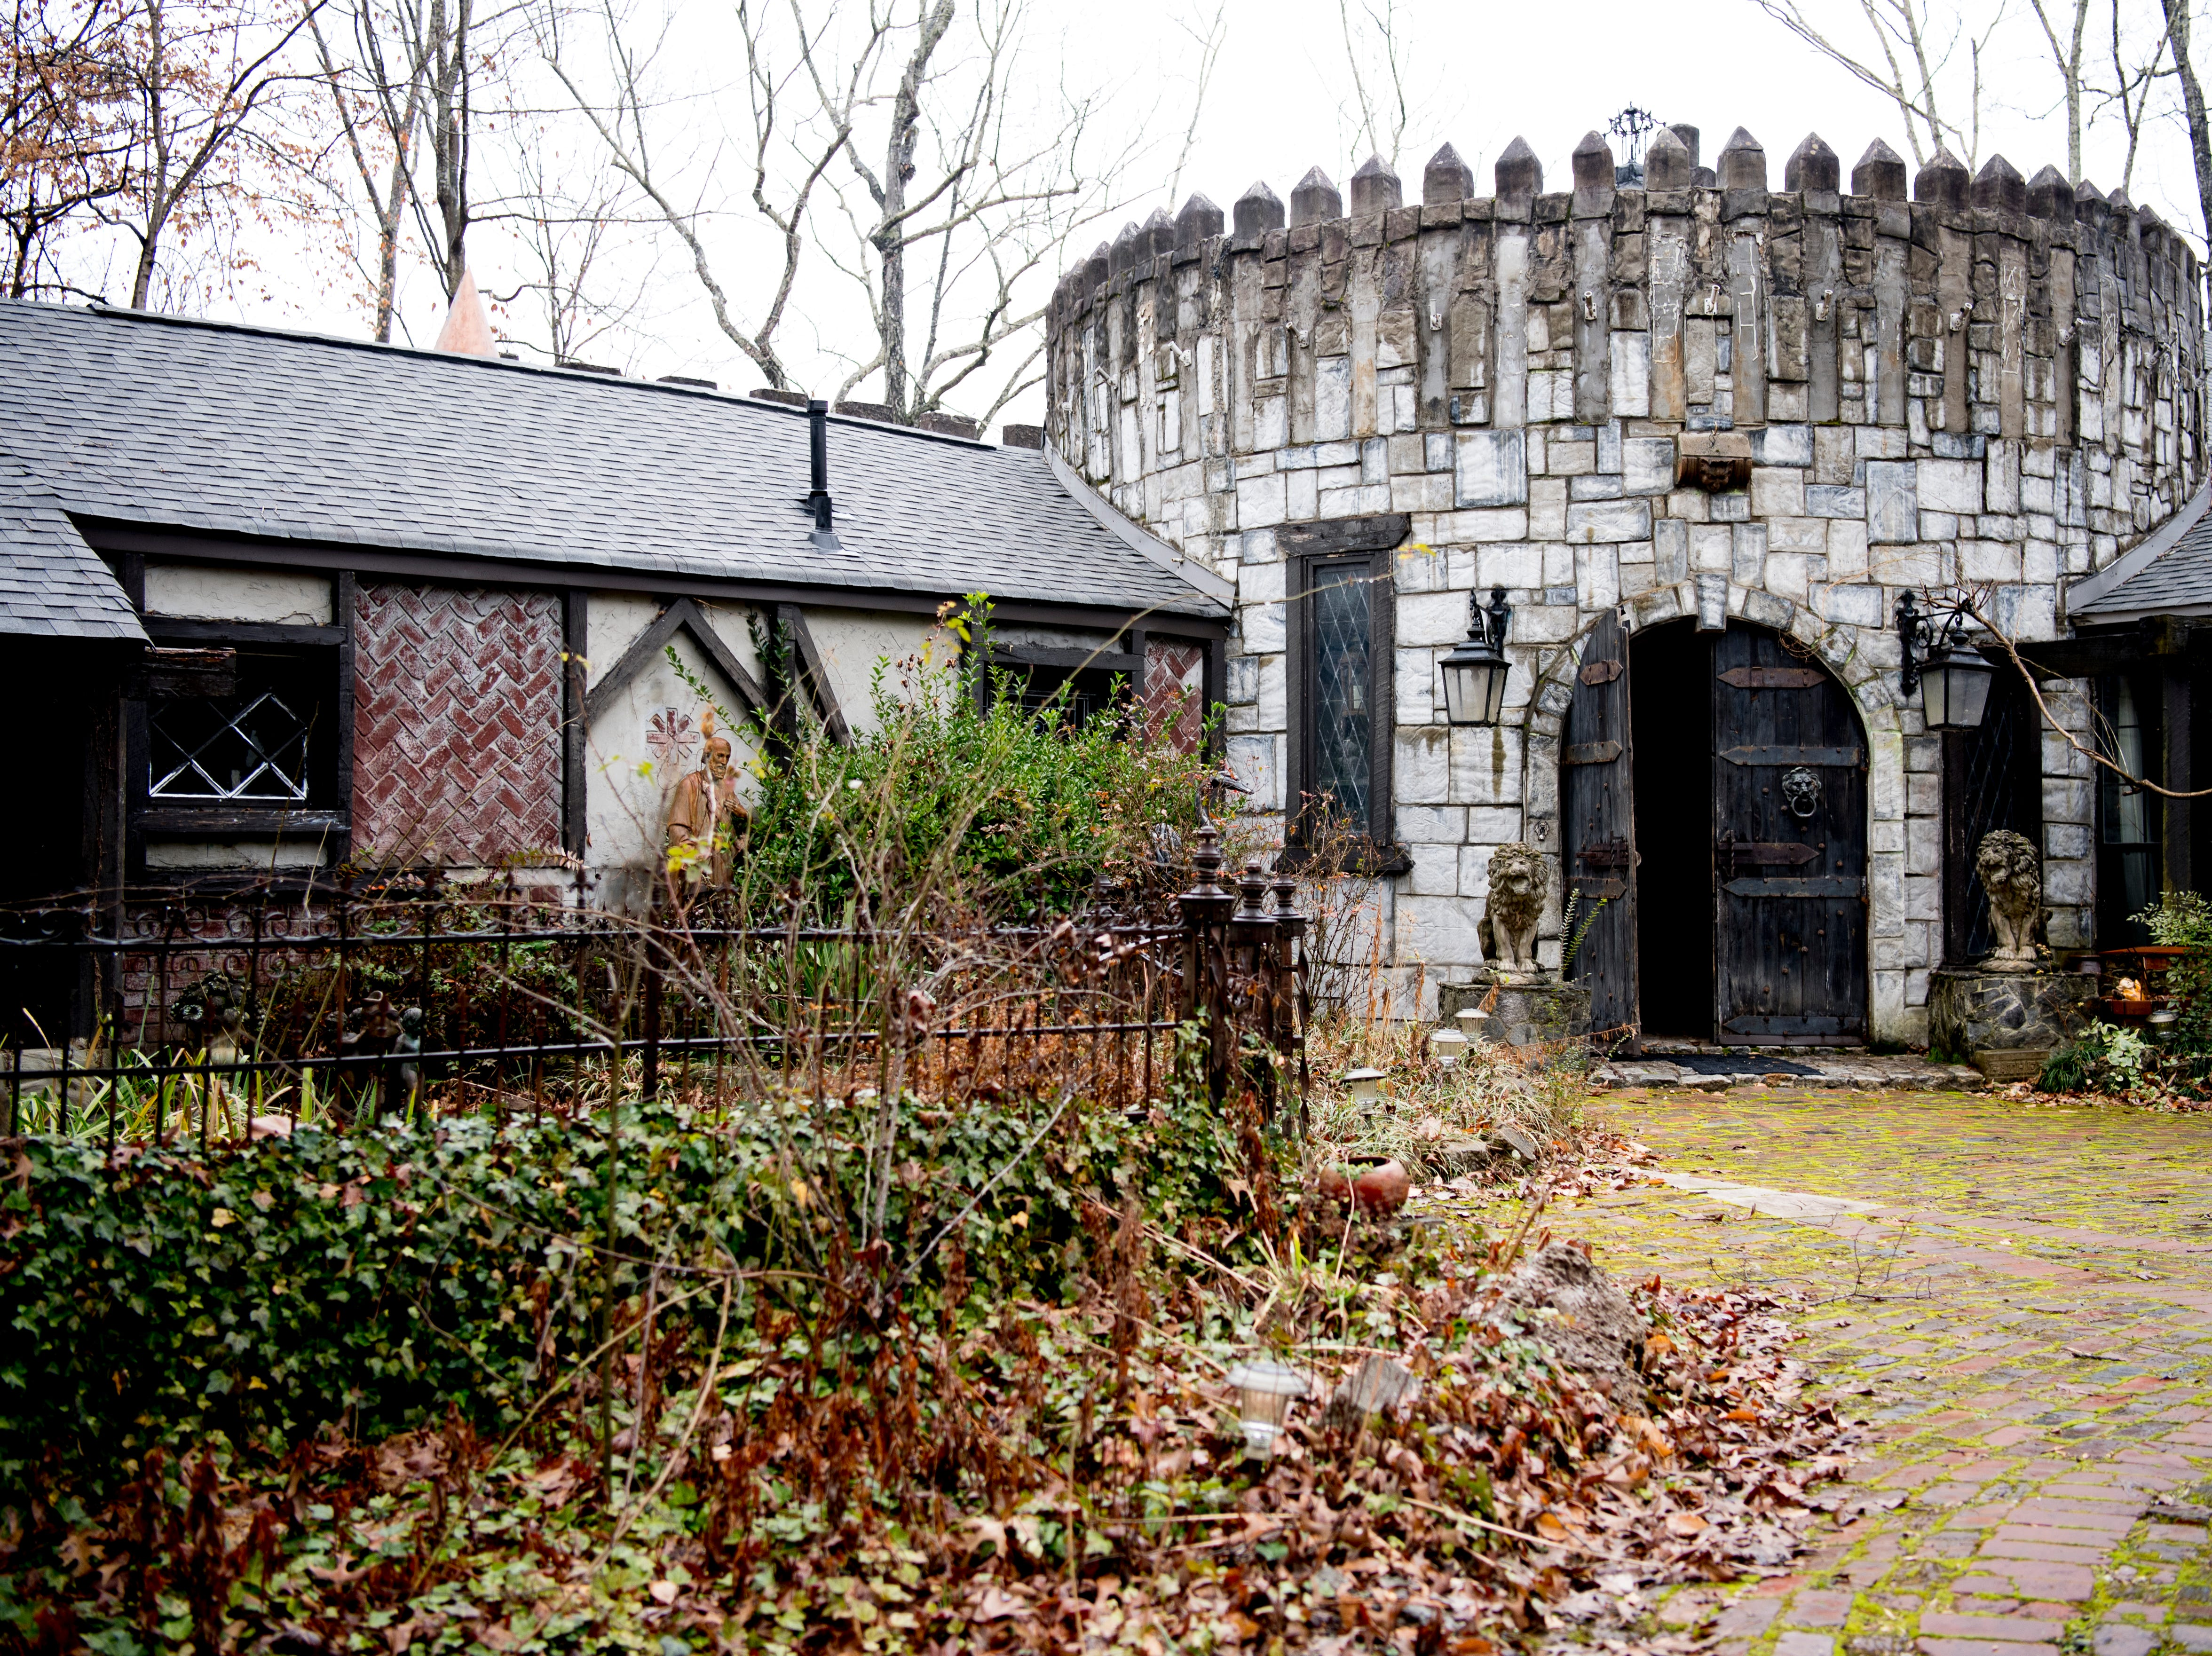 The main entrance at Williamswood Castle was once the main archway to the former Young High School in South Knoxville. Many of the items in the home were sourced from the Knoxville area. In 2019, the castle was listed on Airbnb.